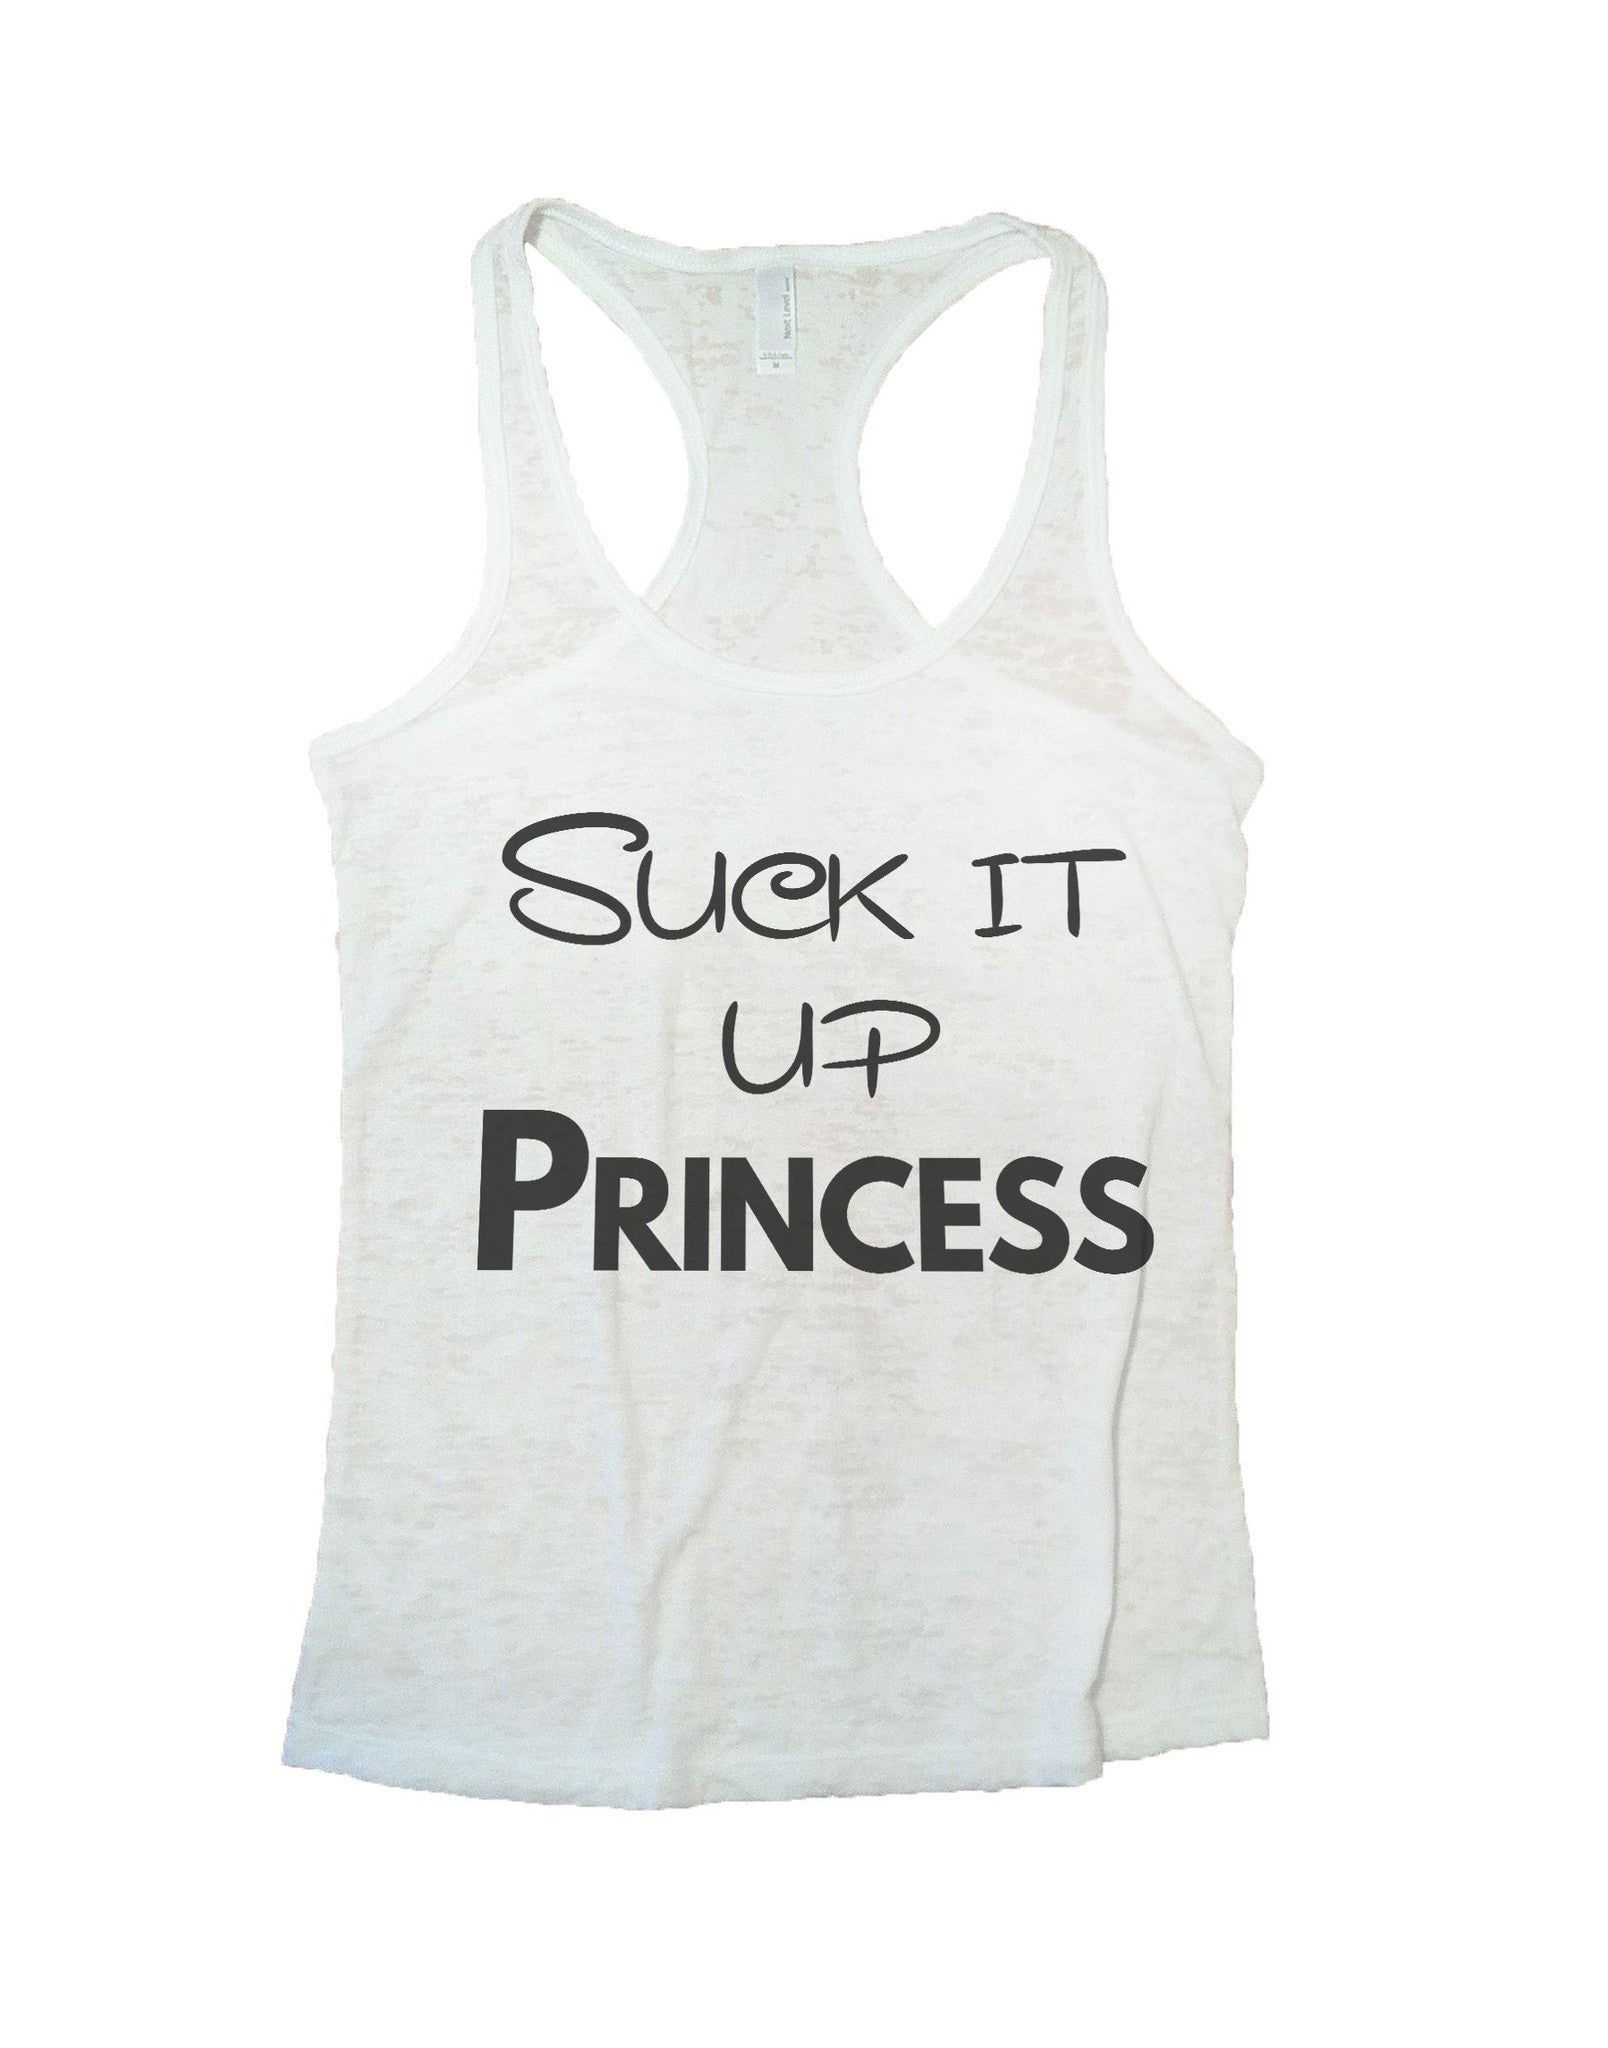 Suck It Up Princess Burnout Tank Top By BurnoutTankTops.com - 639 - Funny Shirts Tank Tops Burnouts and Triblends  - 5